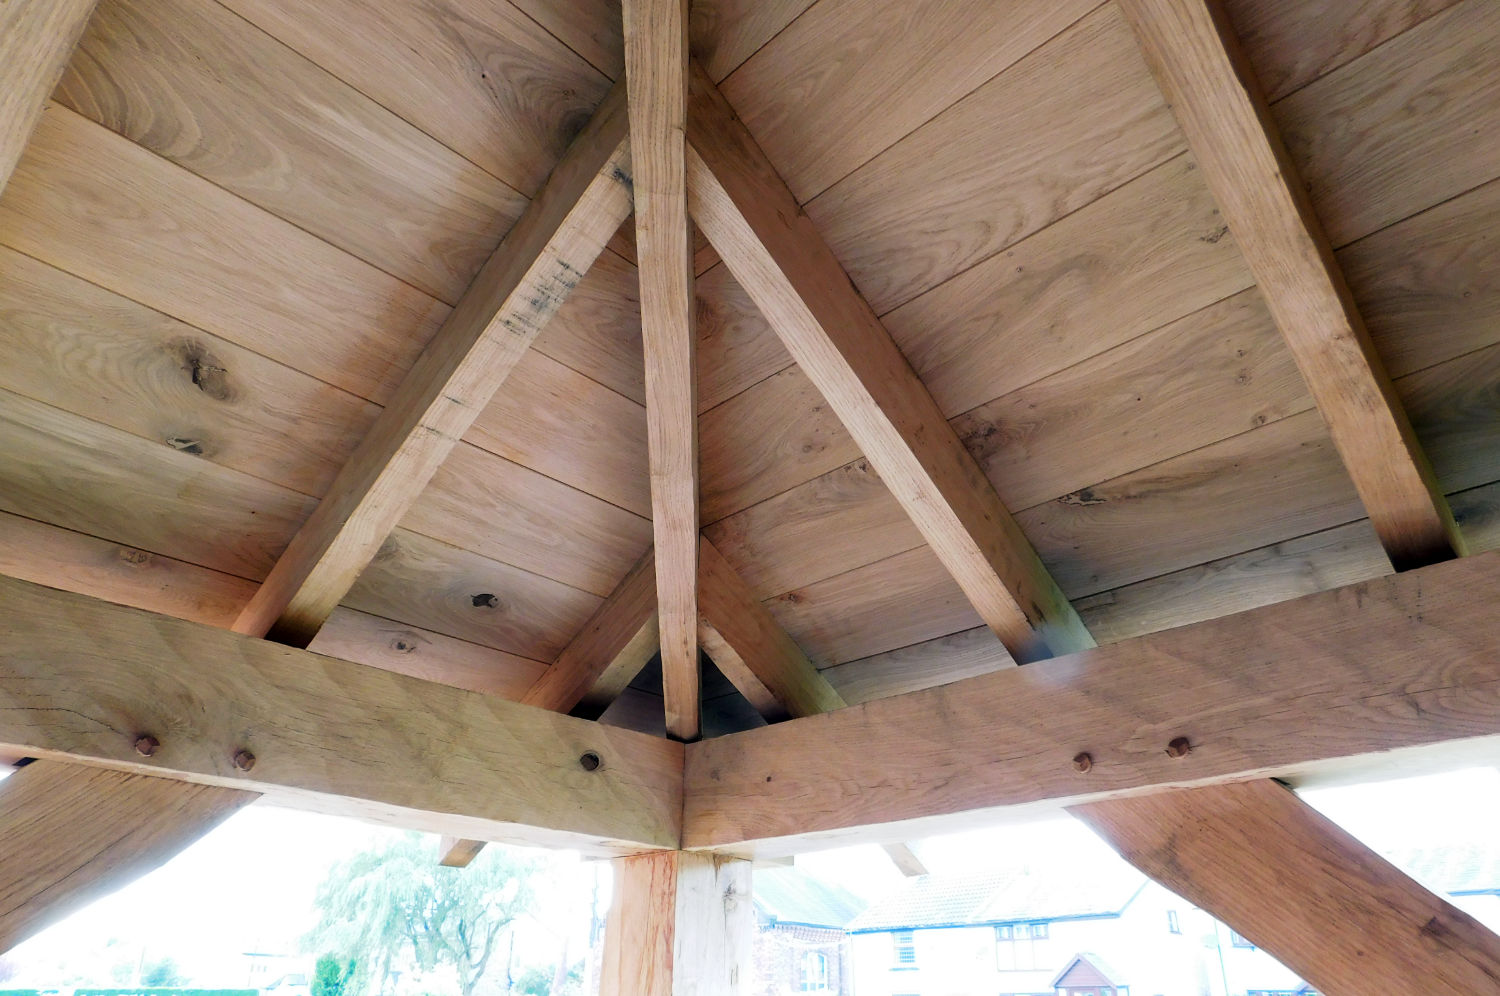 Traditional Oak Frame Corner Porch, roof with reclaimed Rosemary tiles and cast Iron rainwater fittings, Stan, Woodhouses